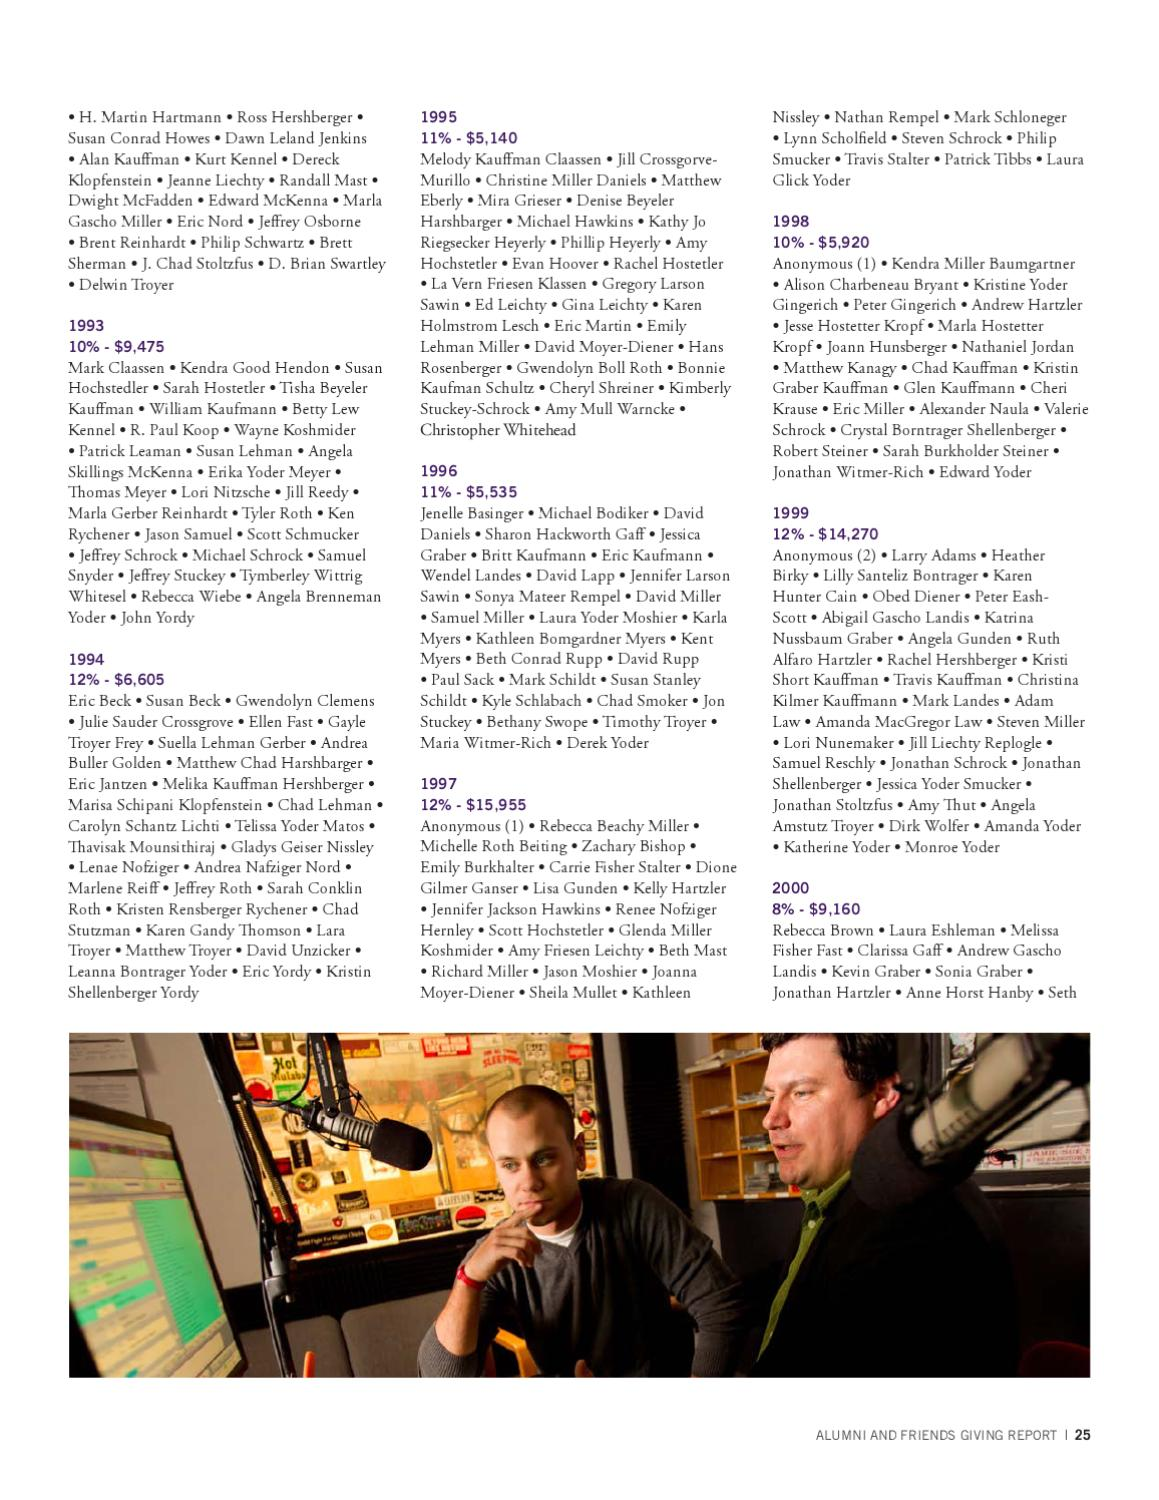 GC Annual Report 2010-2011 by Goshen College - issuu